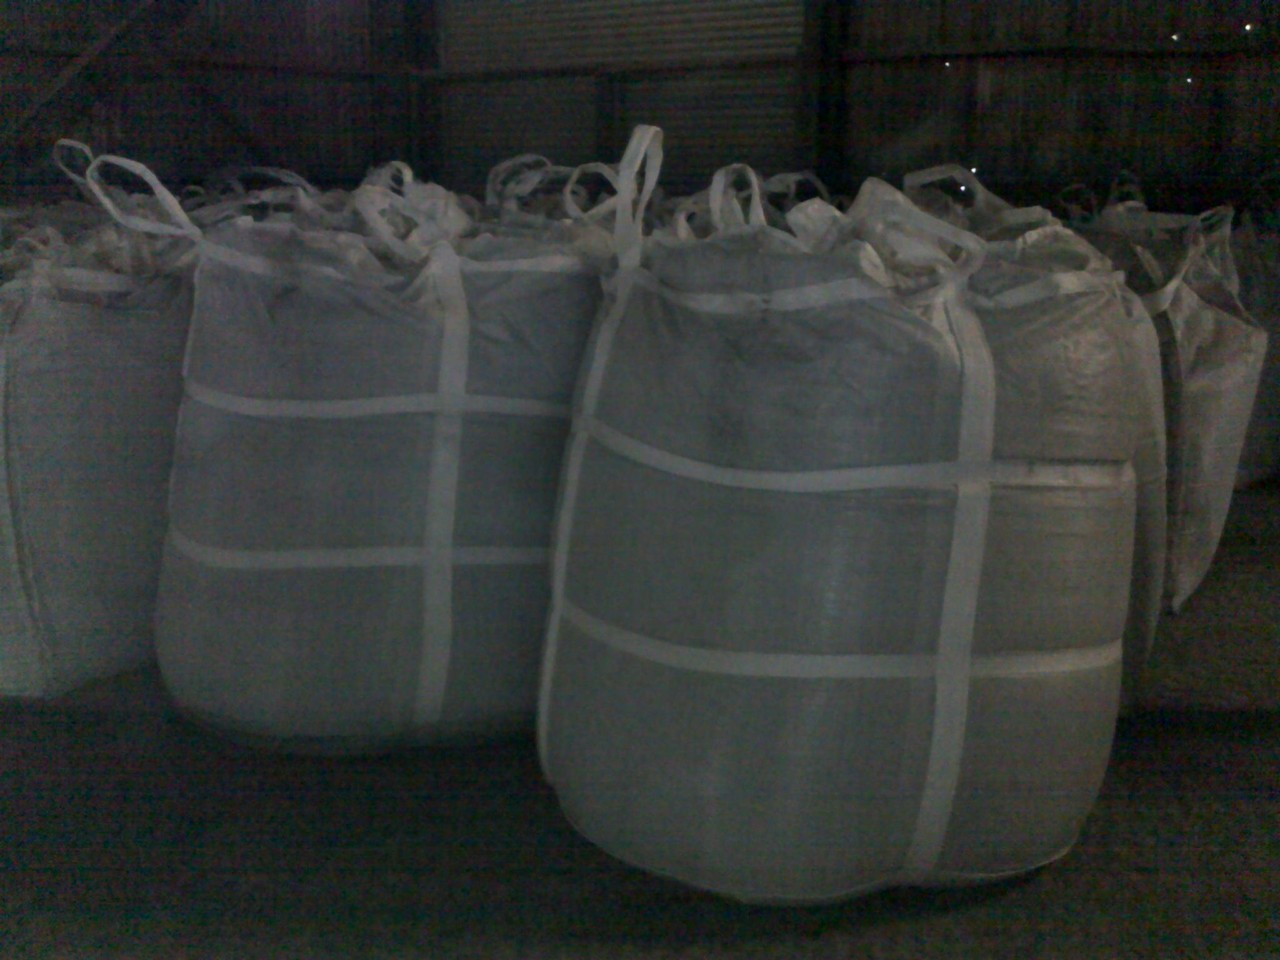 Bagged Cement In Sling Bag